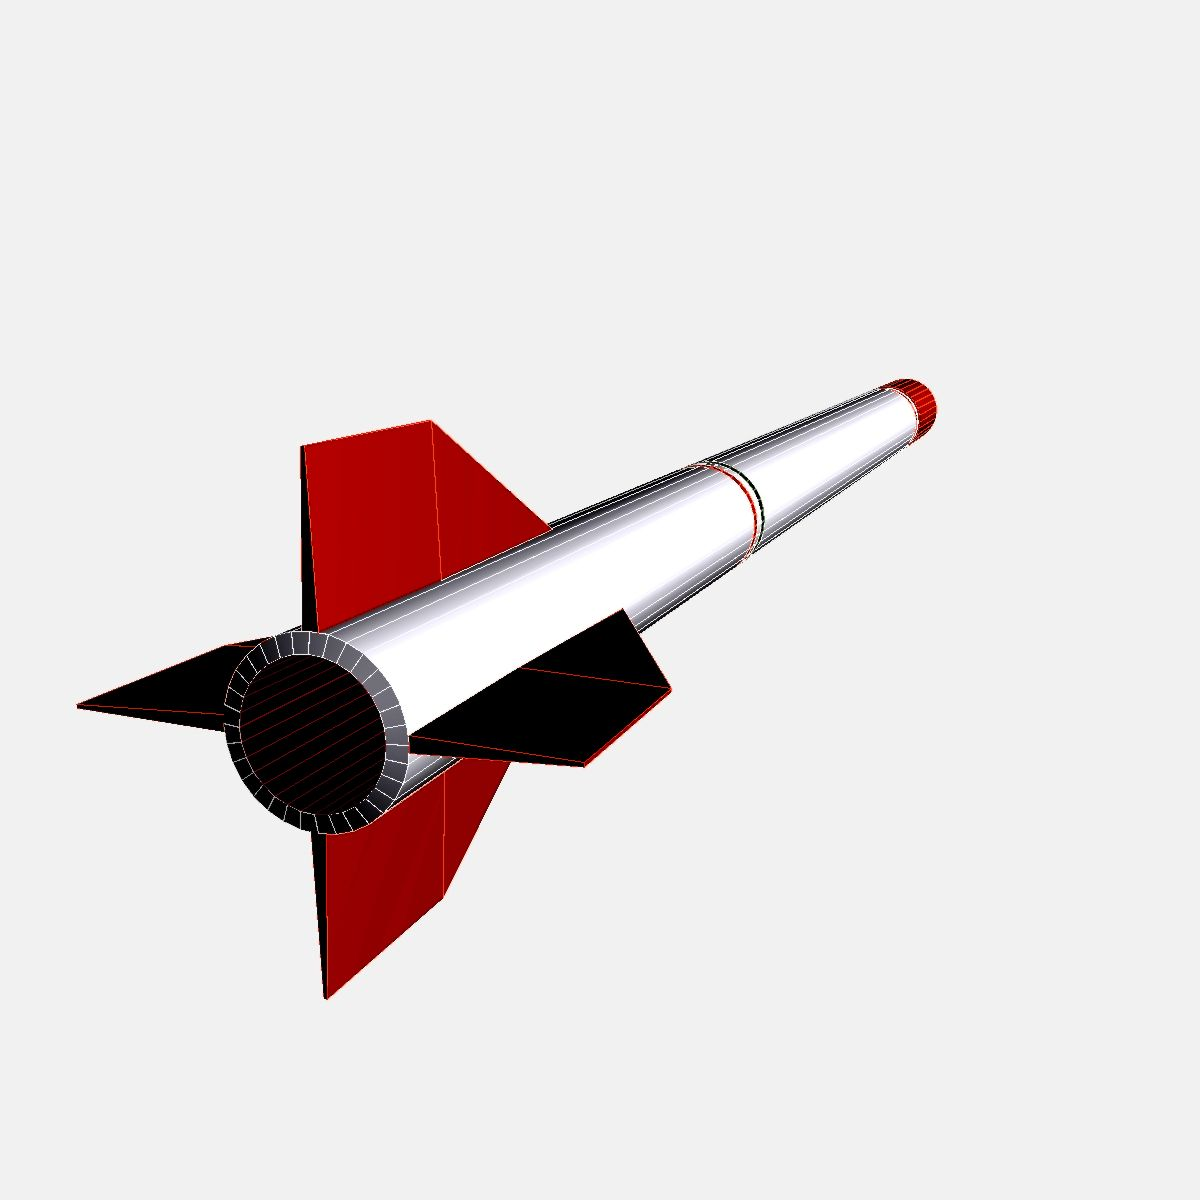 oghab rocket 3d model 3ds dxf fbx blend cob dae x  obj 205497